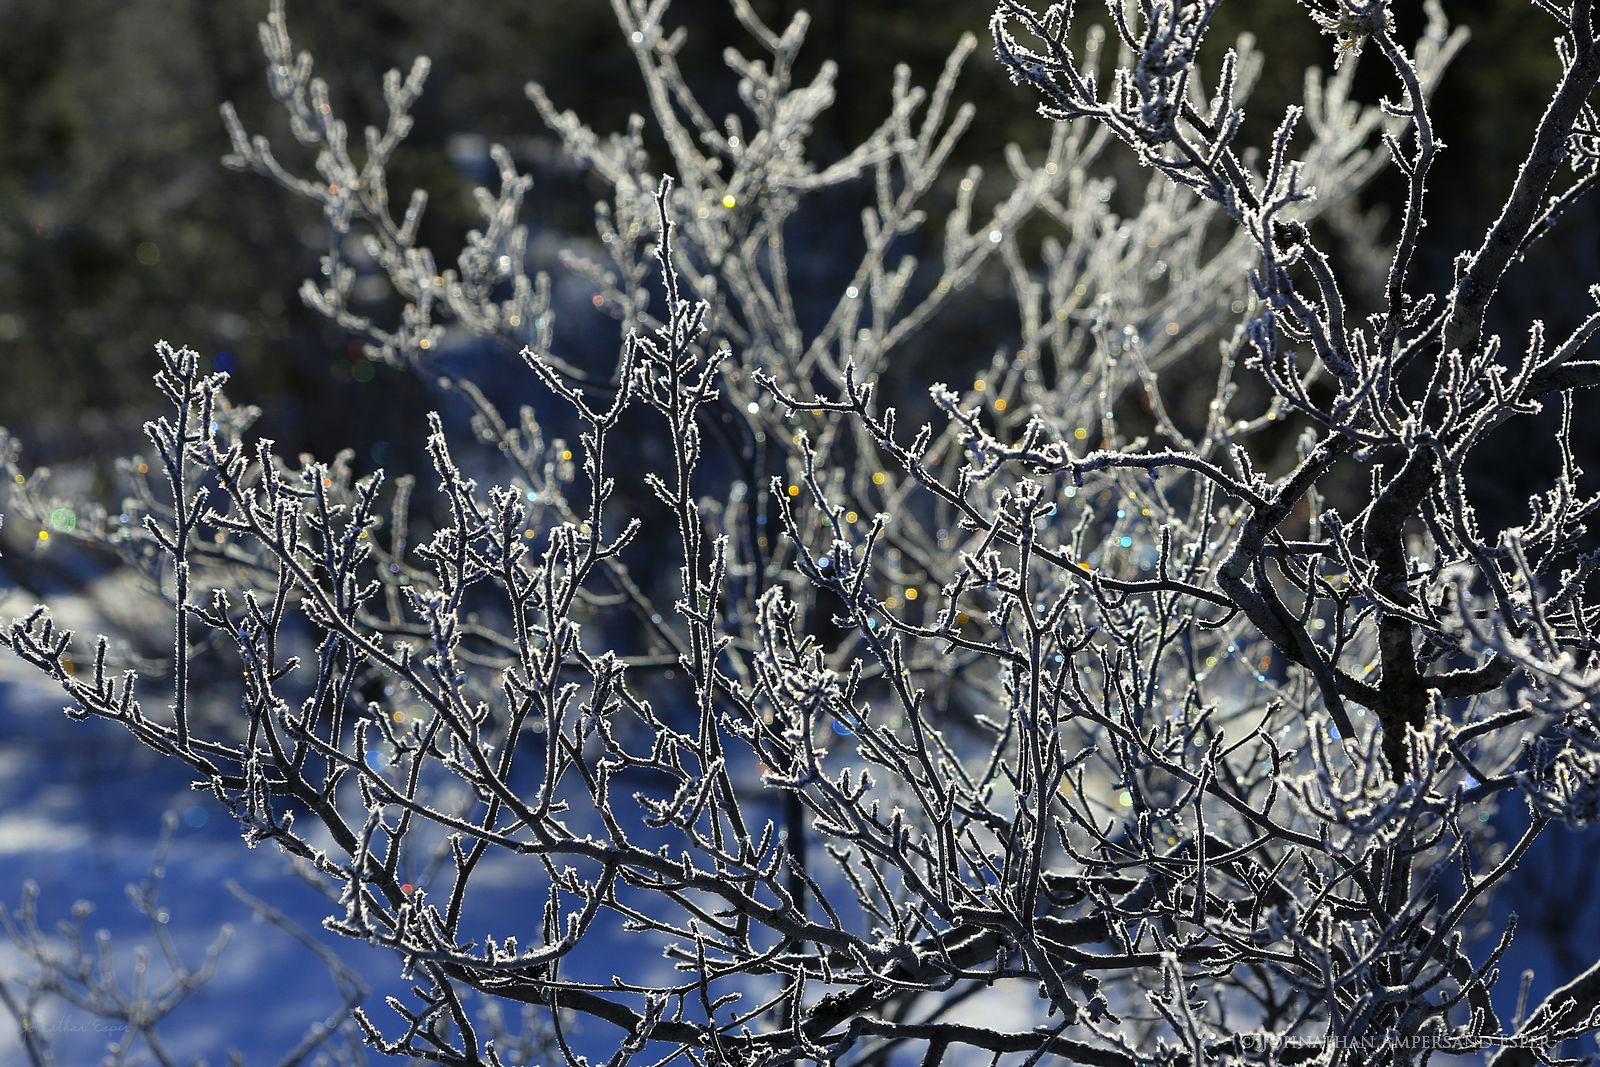 South Pond,South Pond Inlet,winter,ice crystals,sparkling,sparkling ice crystals,bush,, photo